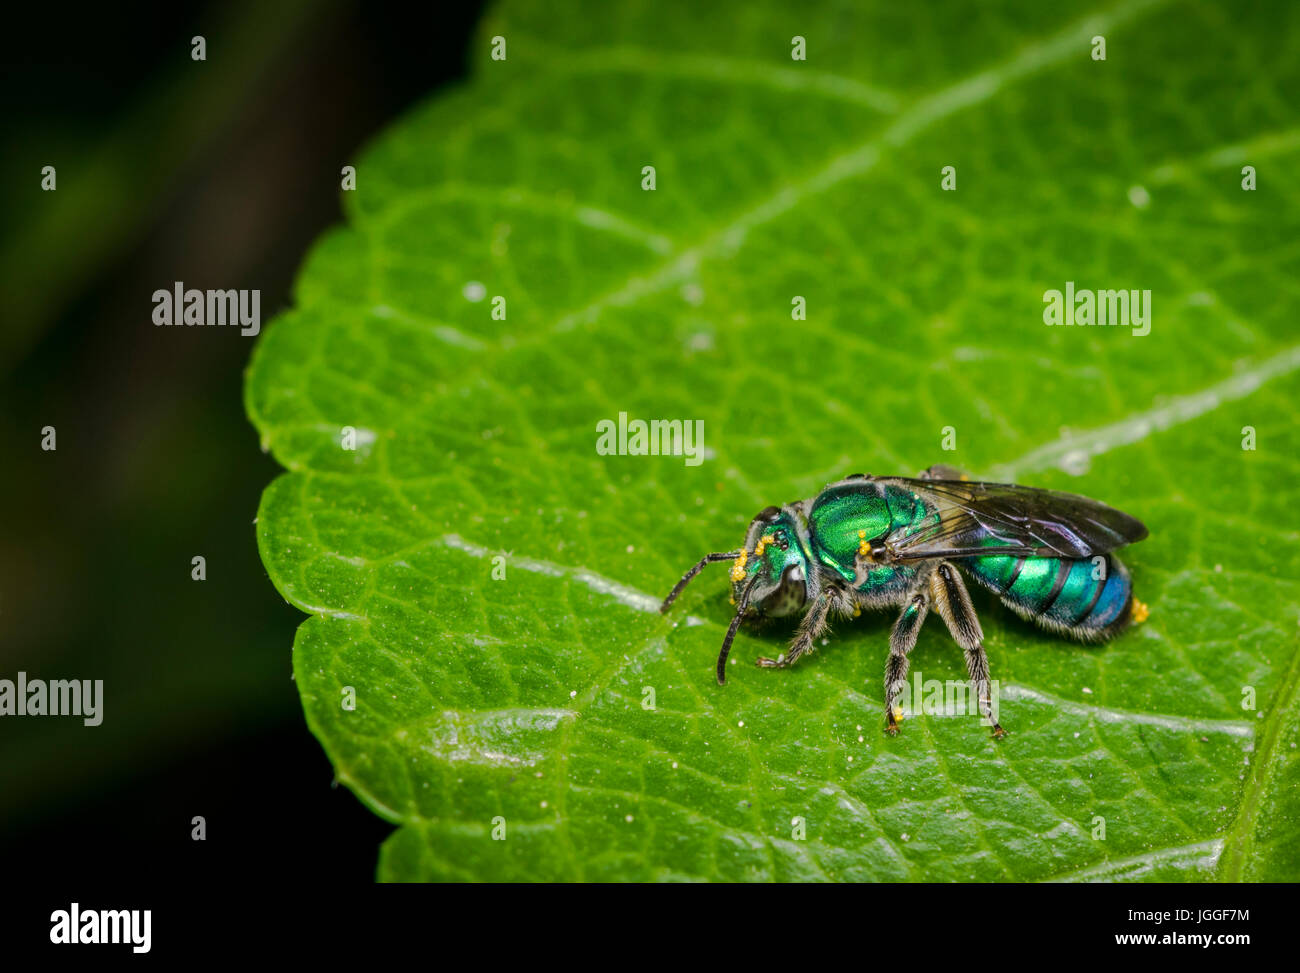 Cuckoo wasp on a plant leaf - Stock Image